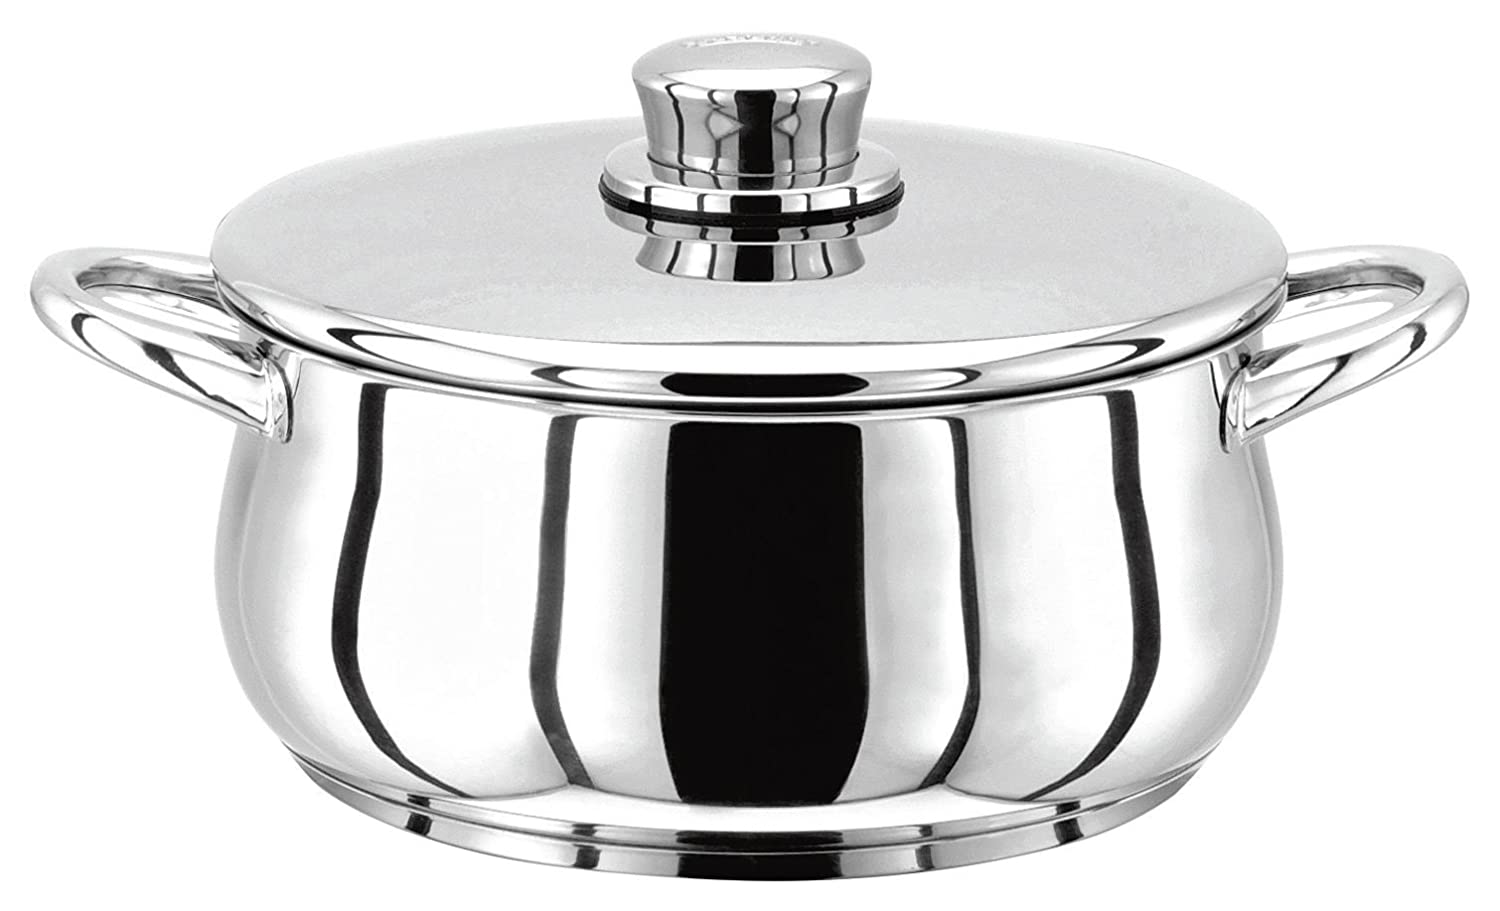 Stellar 1000 Stainless Steel Casserole Pan and Lid (20cm) 2.0 Ltr Capacity